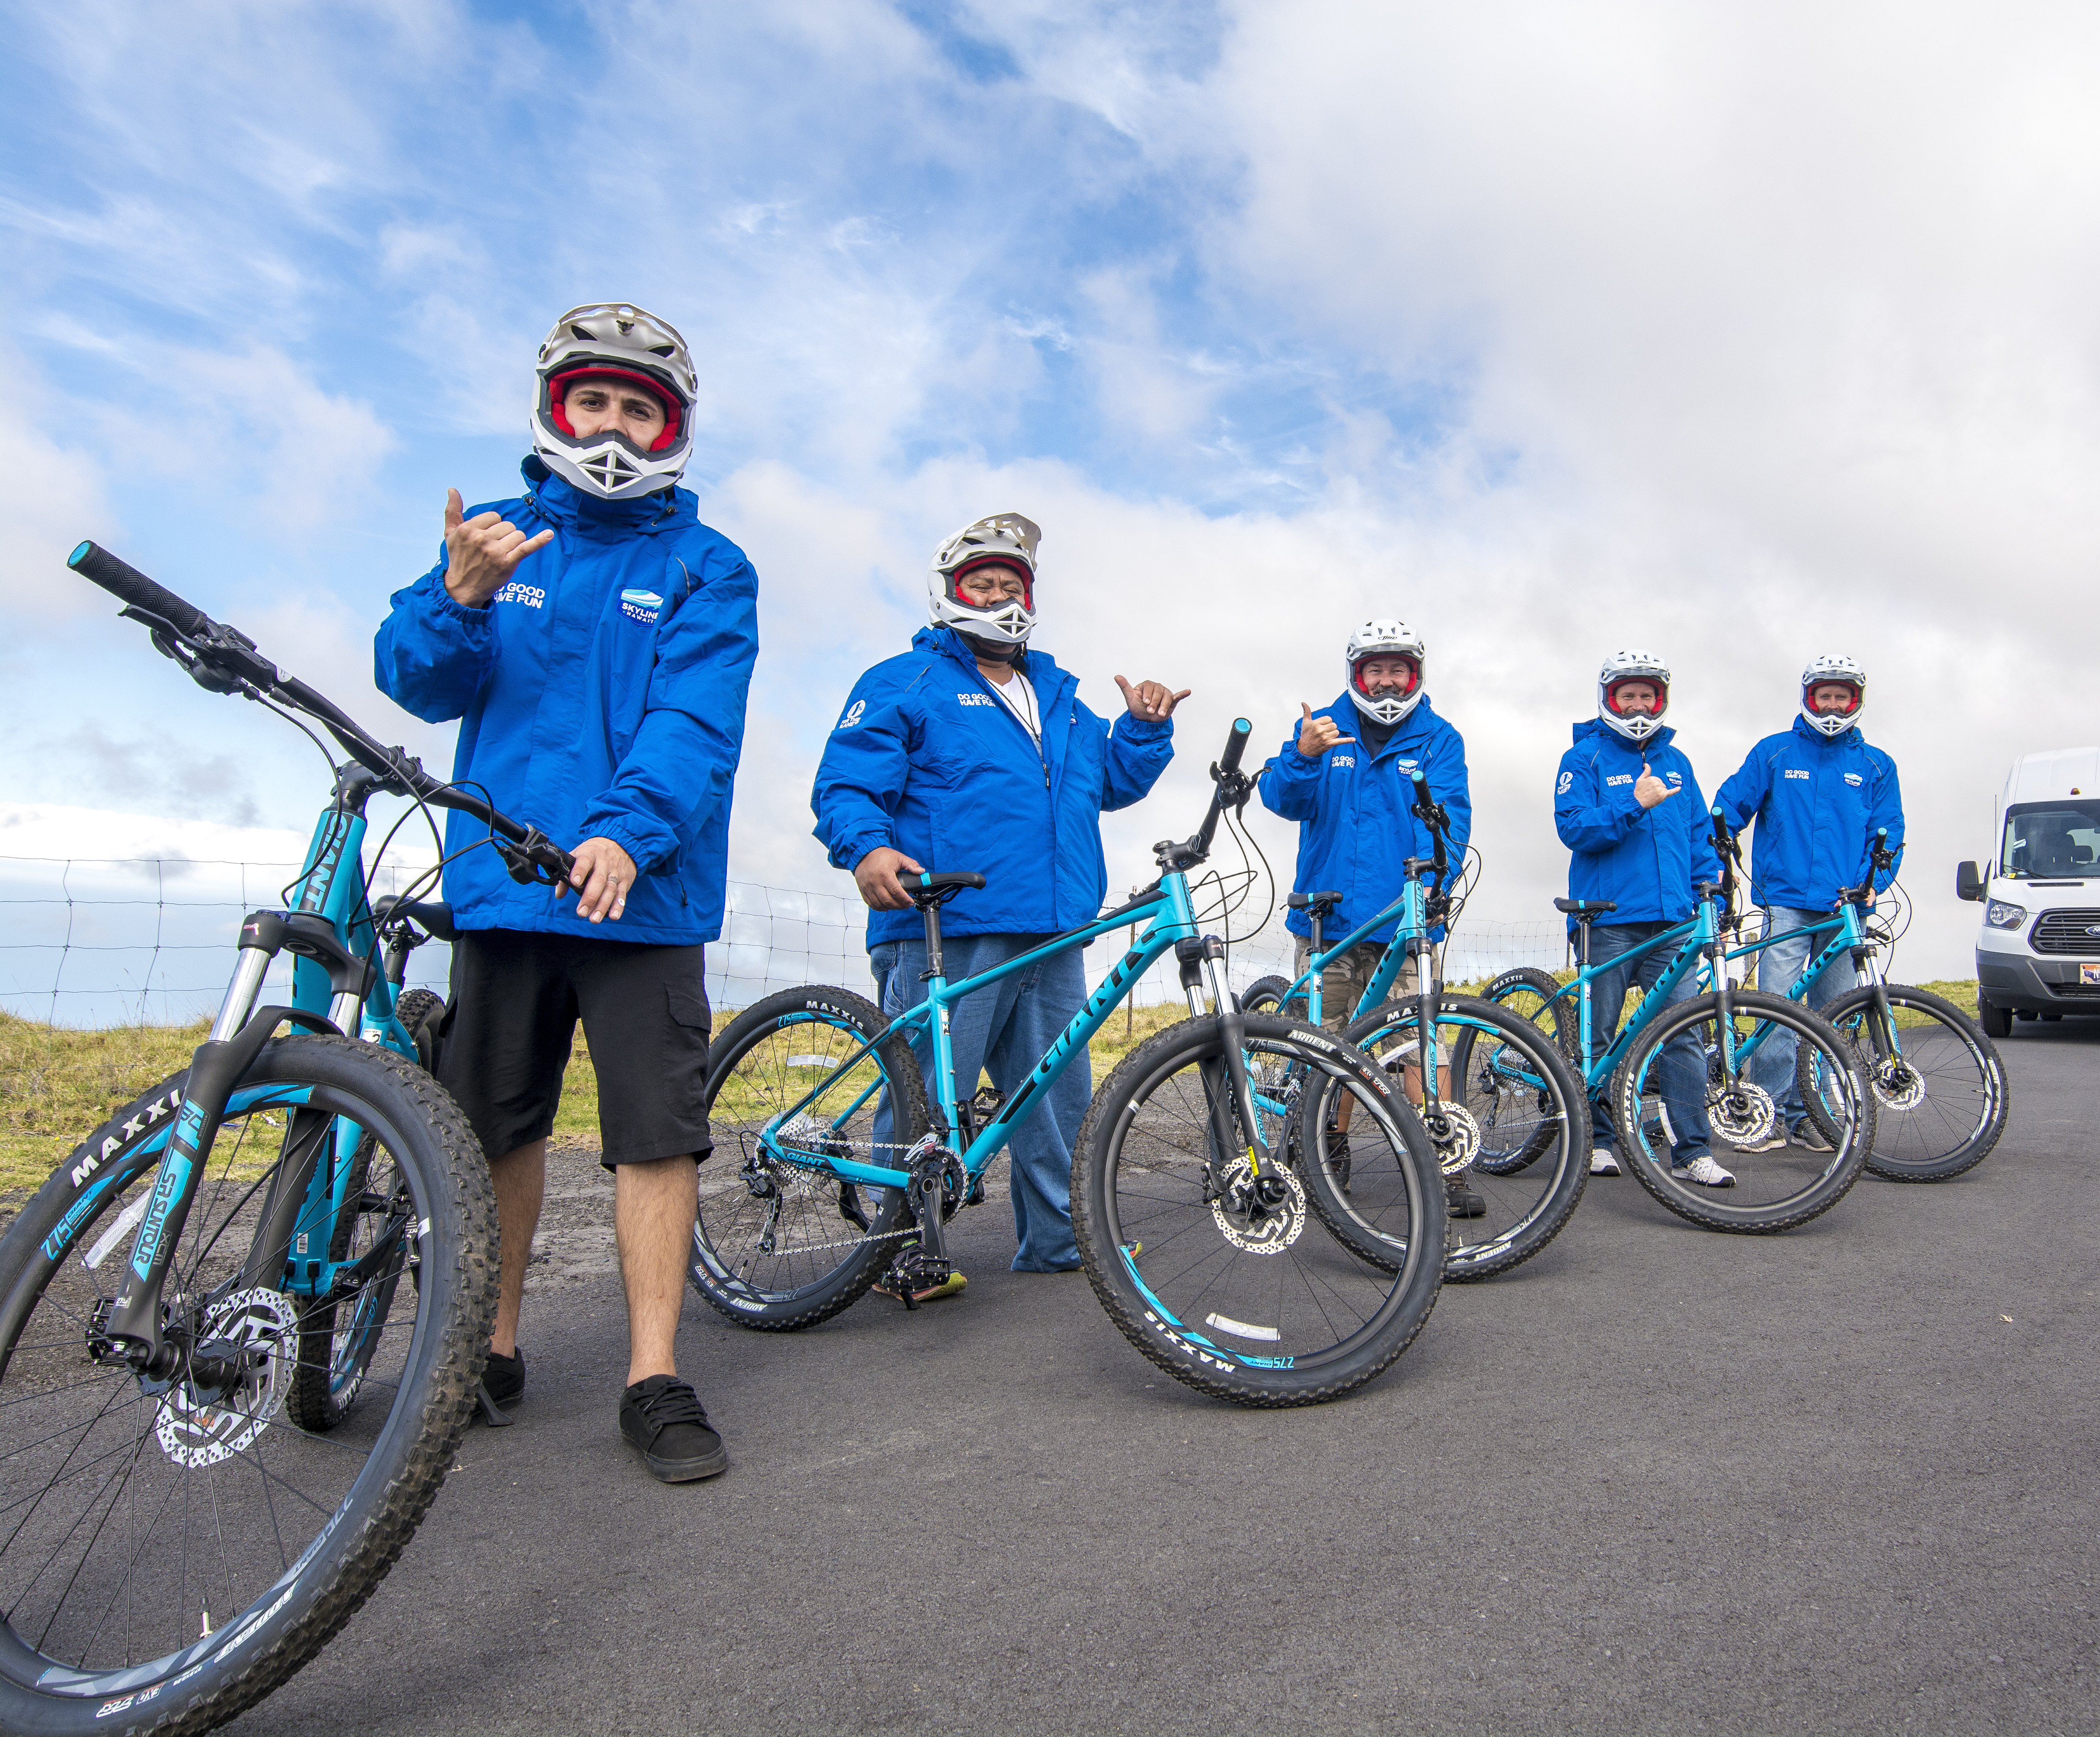 Haleakala National Park Bike n zip tour